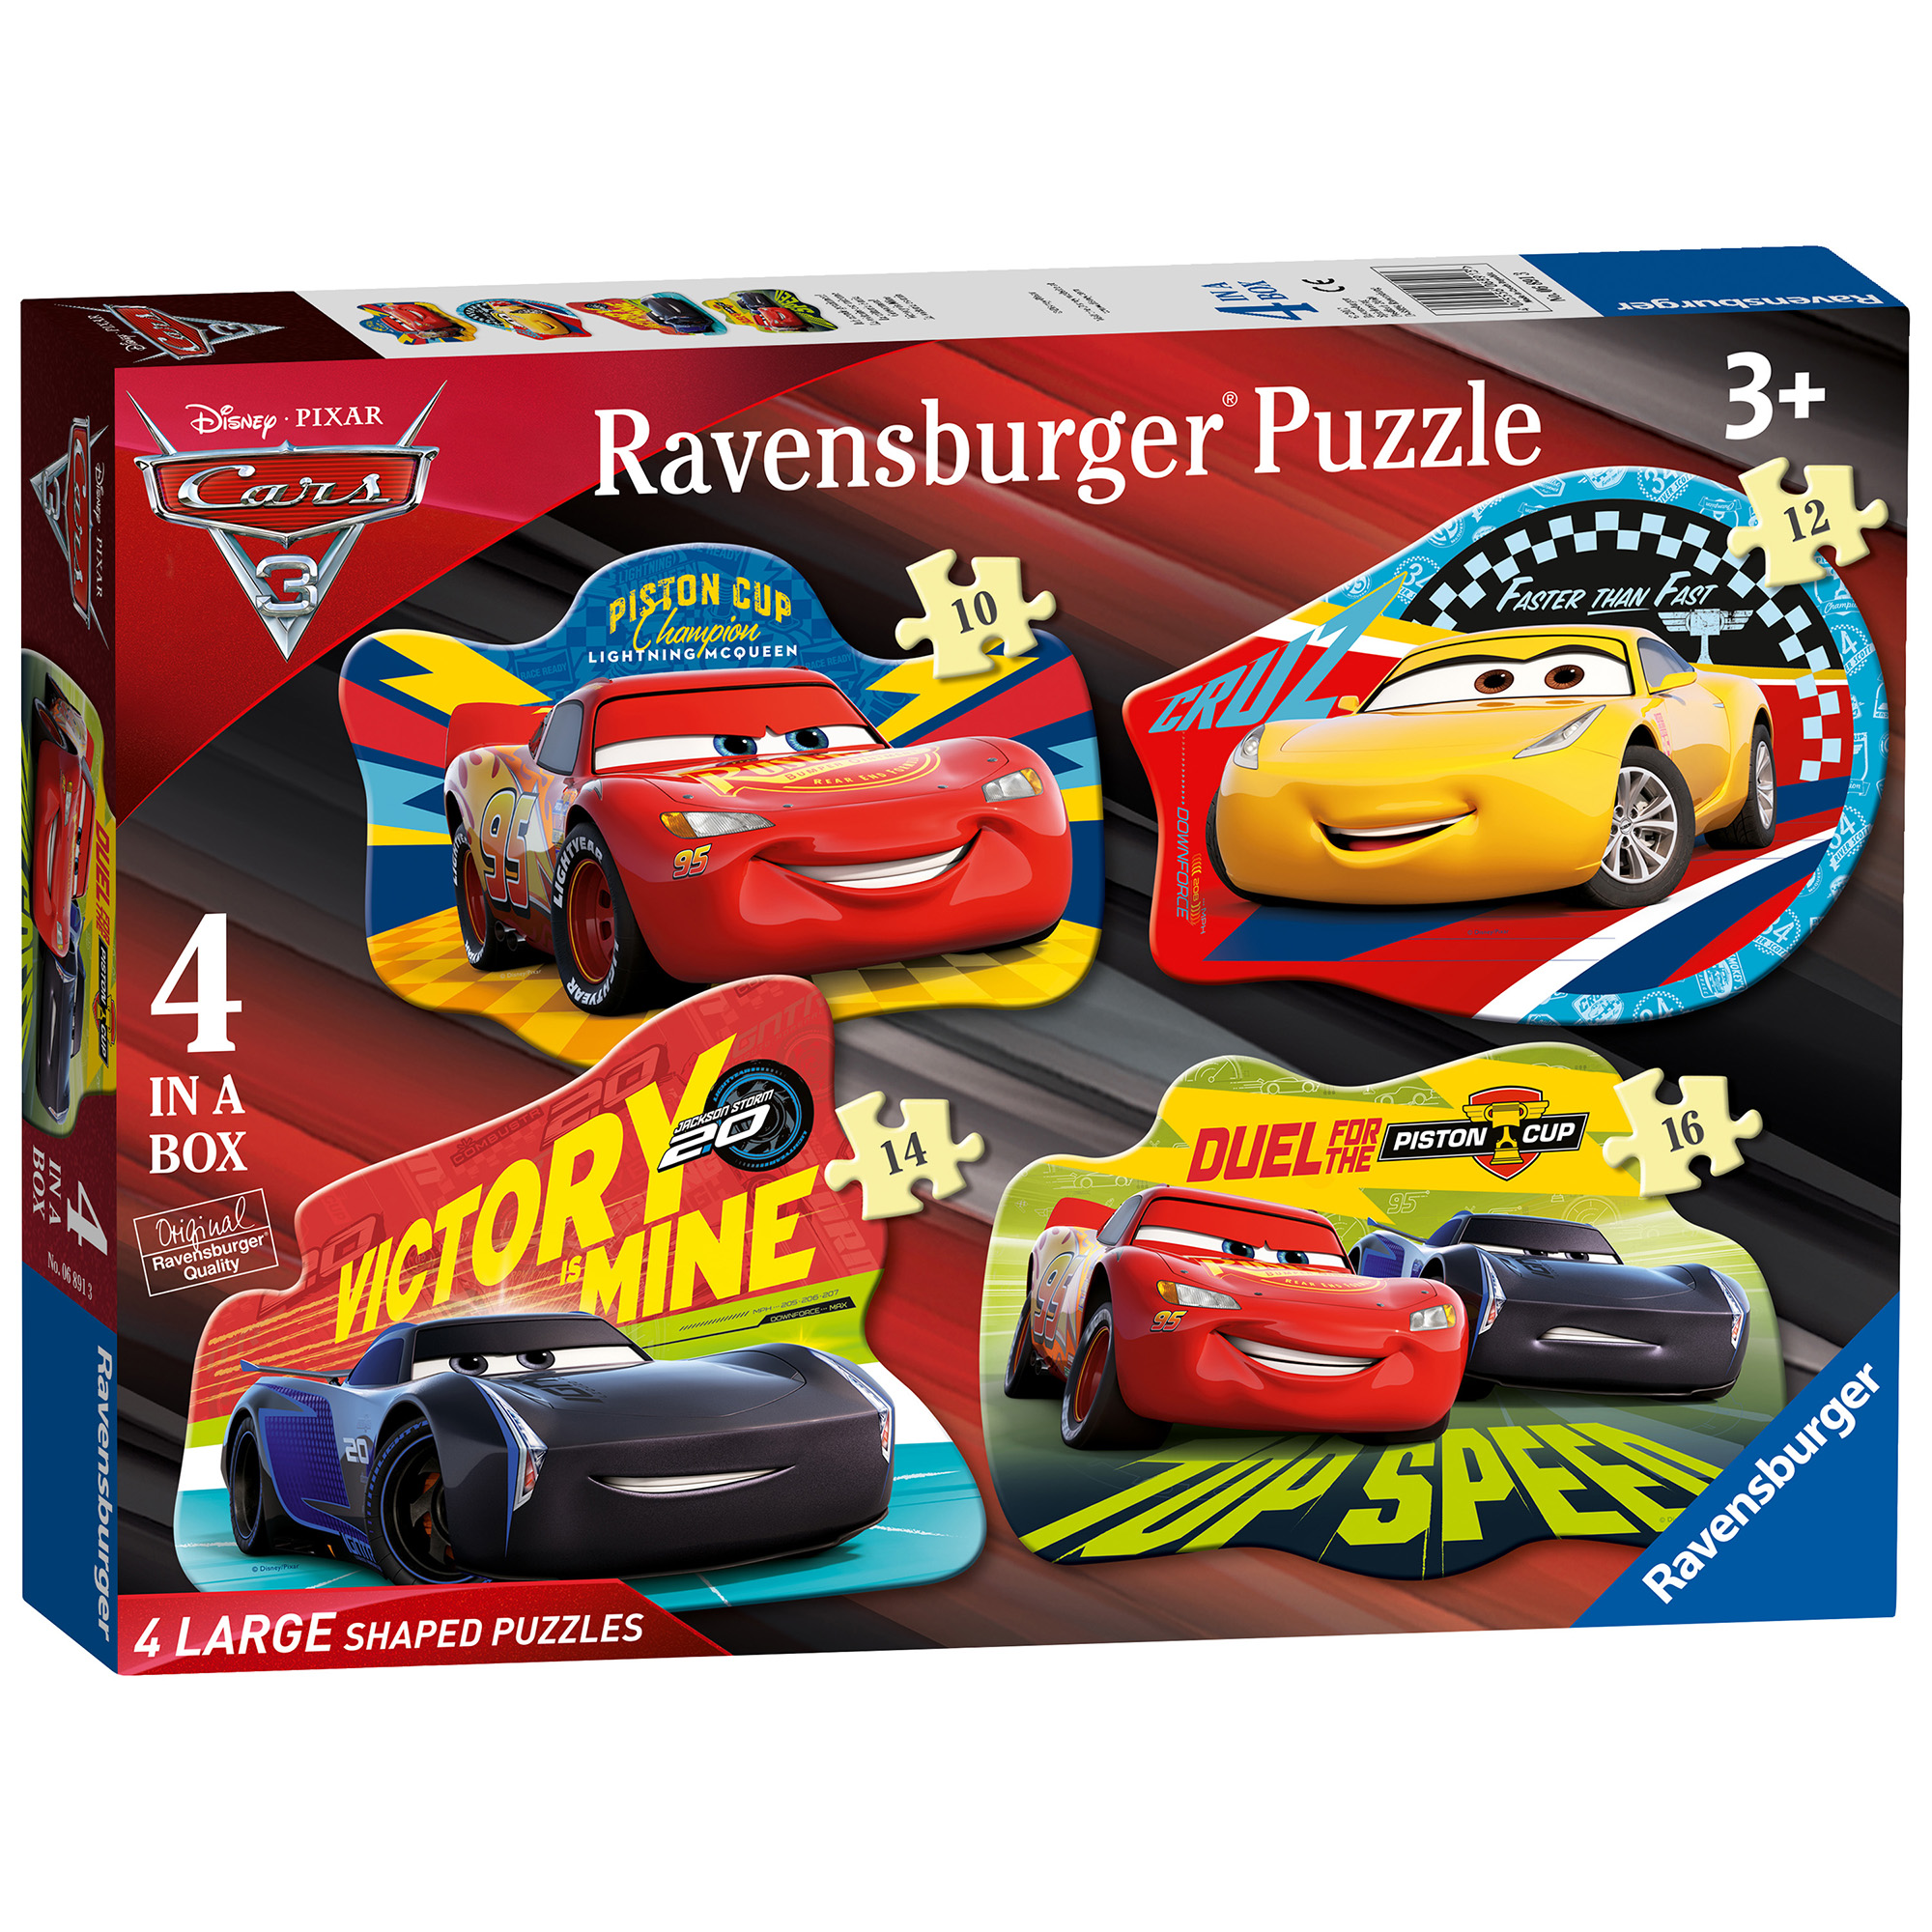 Ravensburger Disney Cars 3 4-in-1 Shaped Jigsaw Puzzle Set